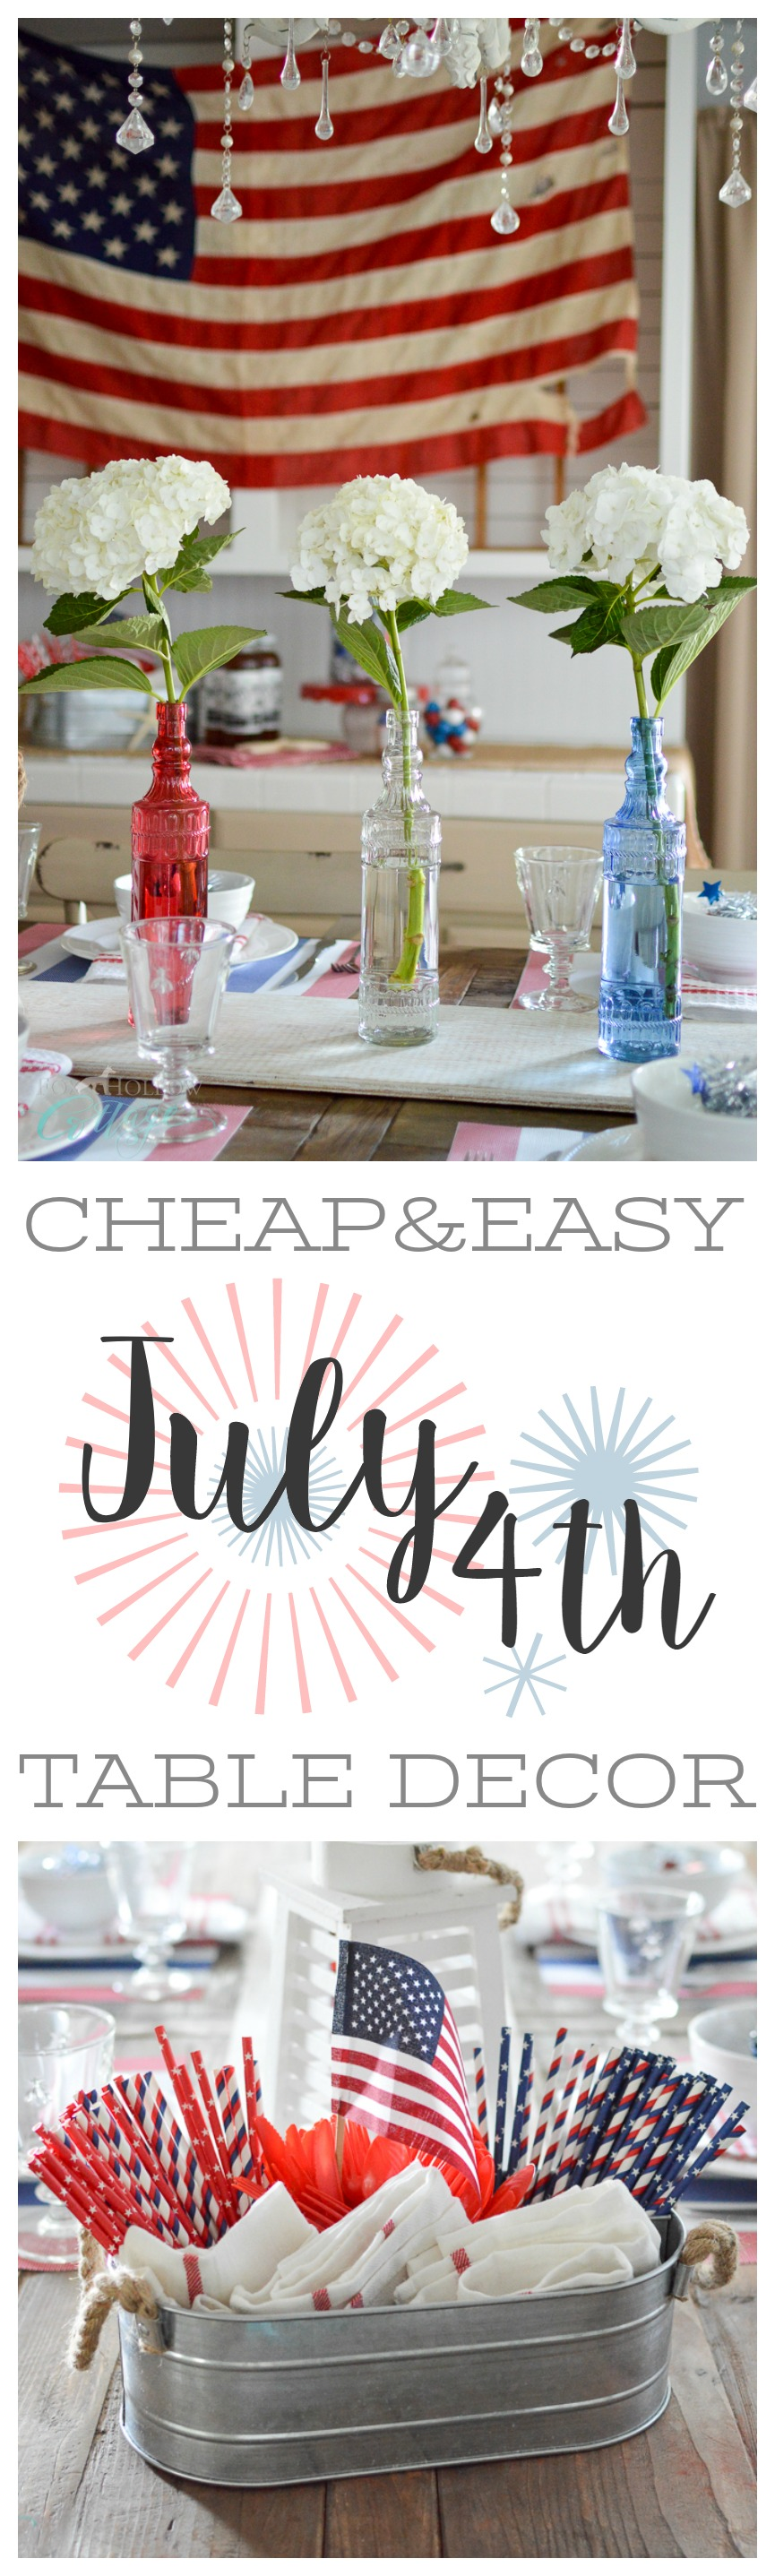 Cheap Easy 4th of July Cottage Farmhouse Table Decorating Ideas at Fox Hollow Cottage